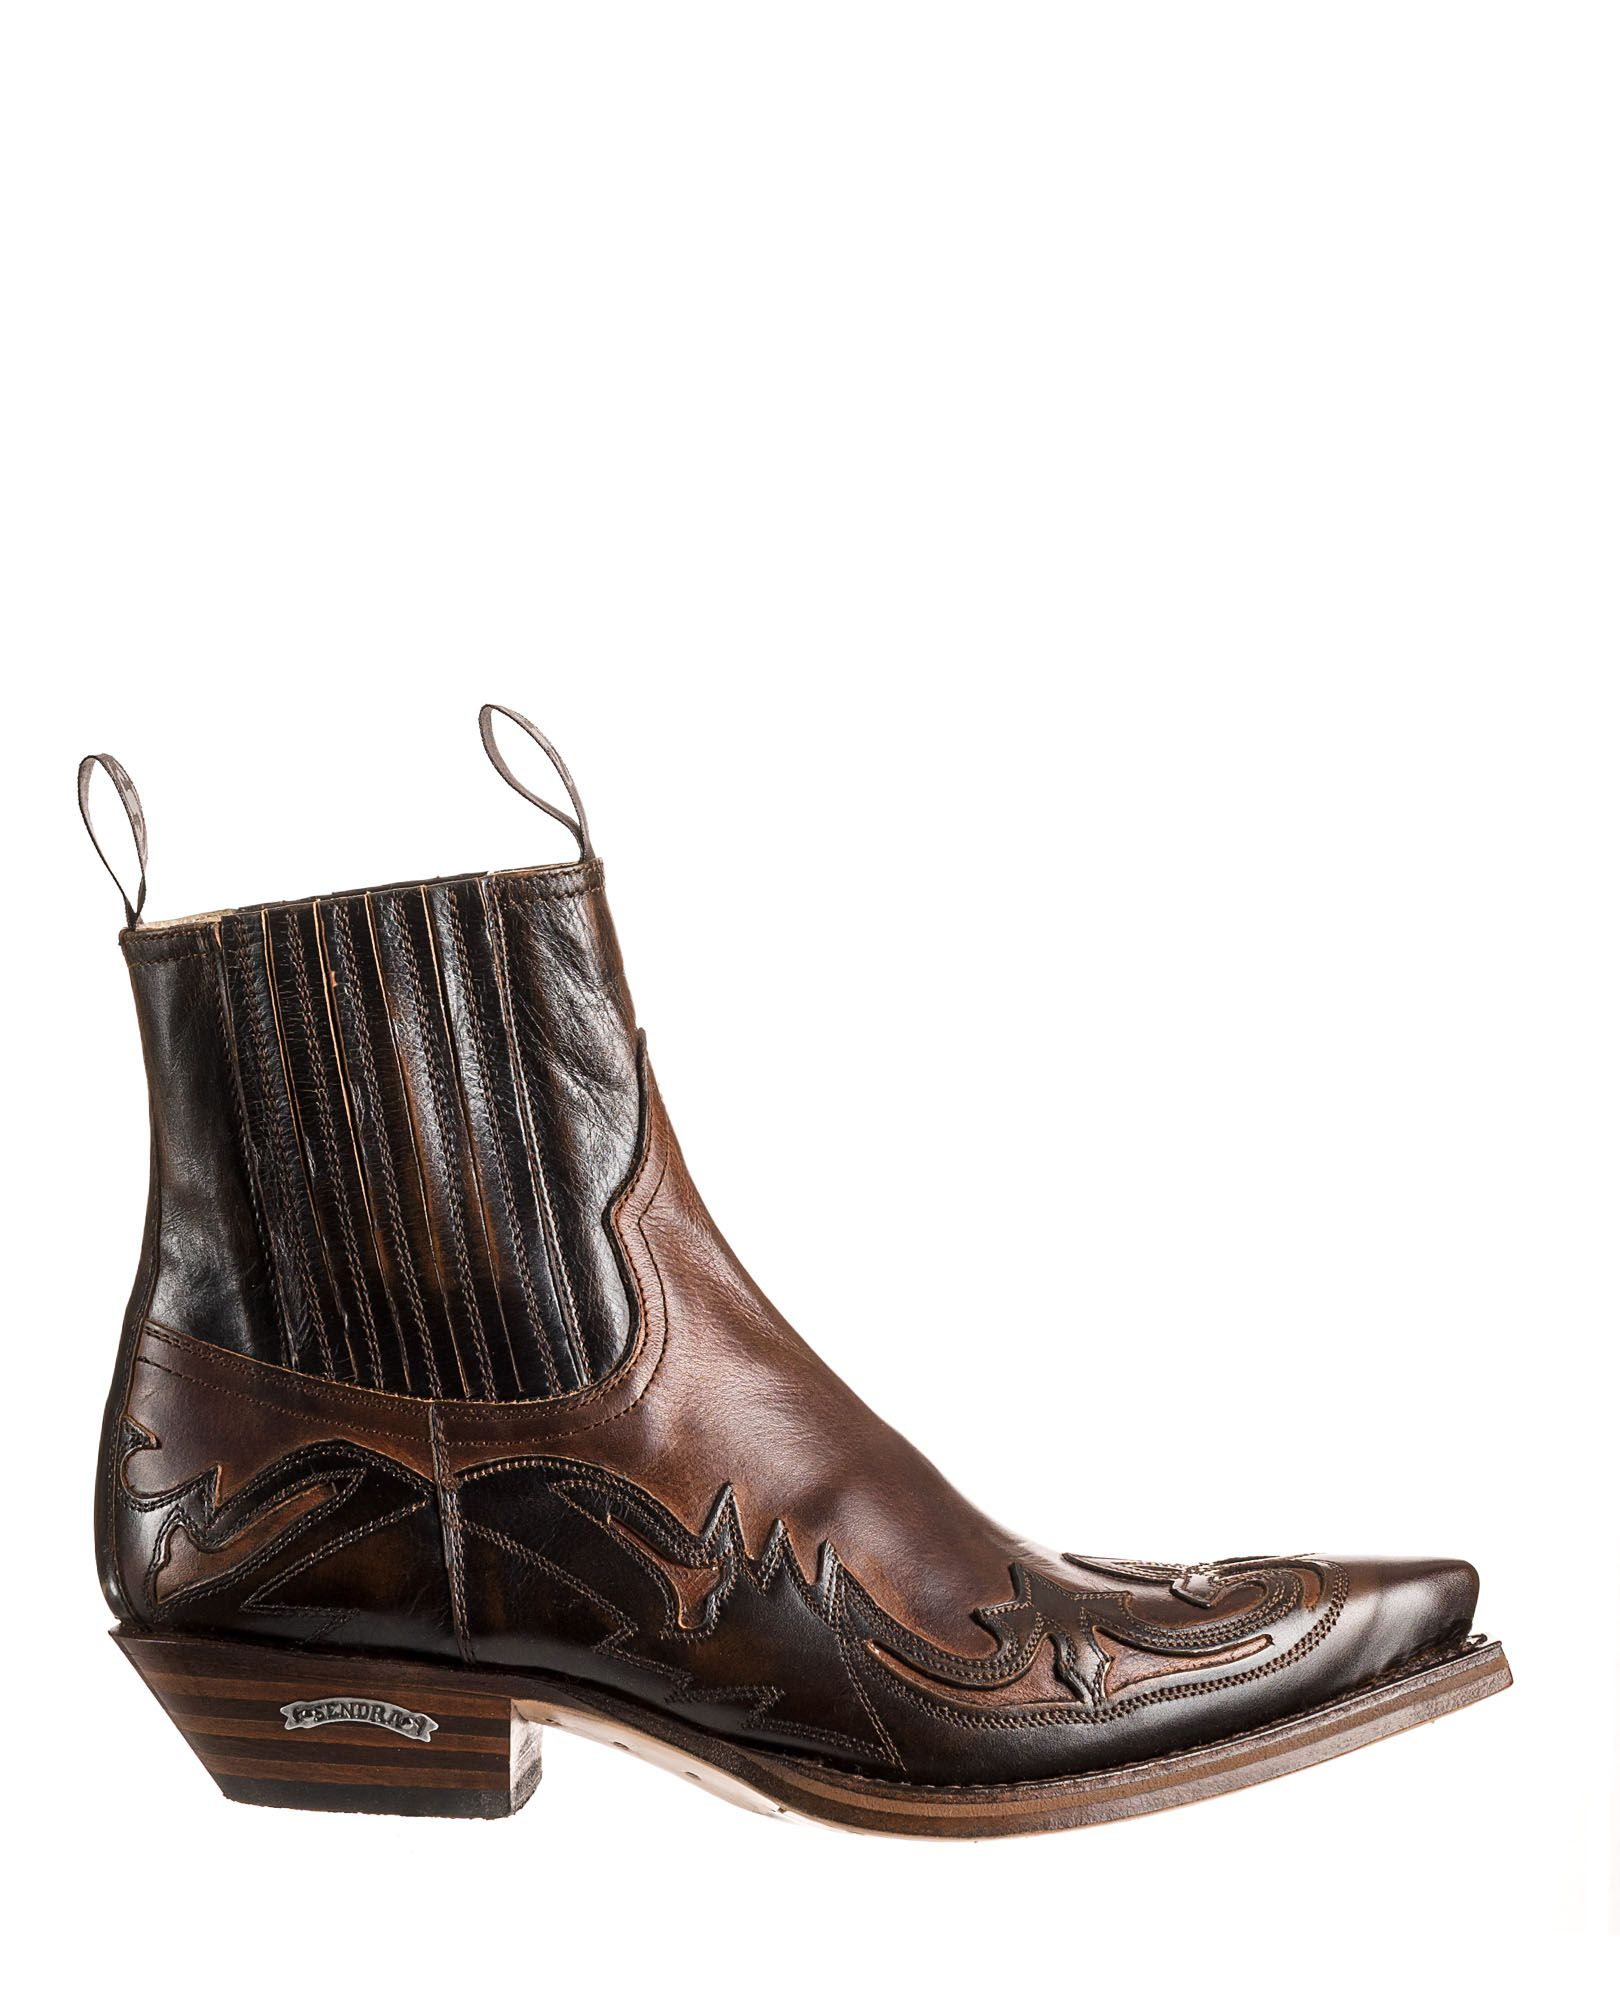 sendra 4660 britnes flo boots country homme santiag basse